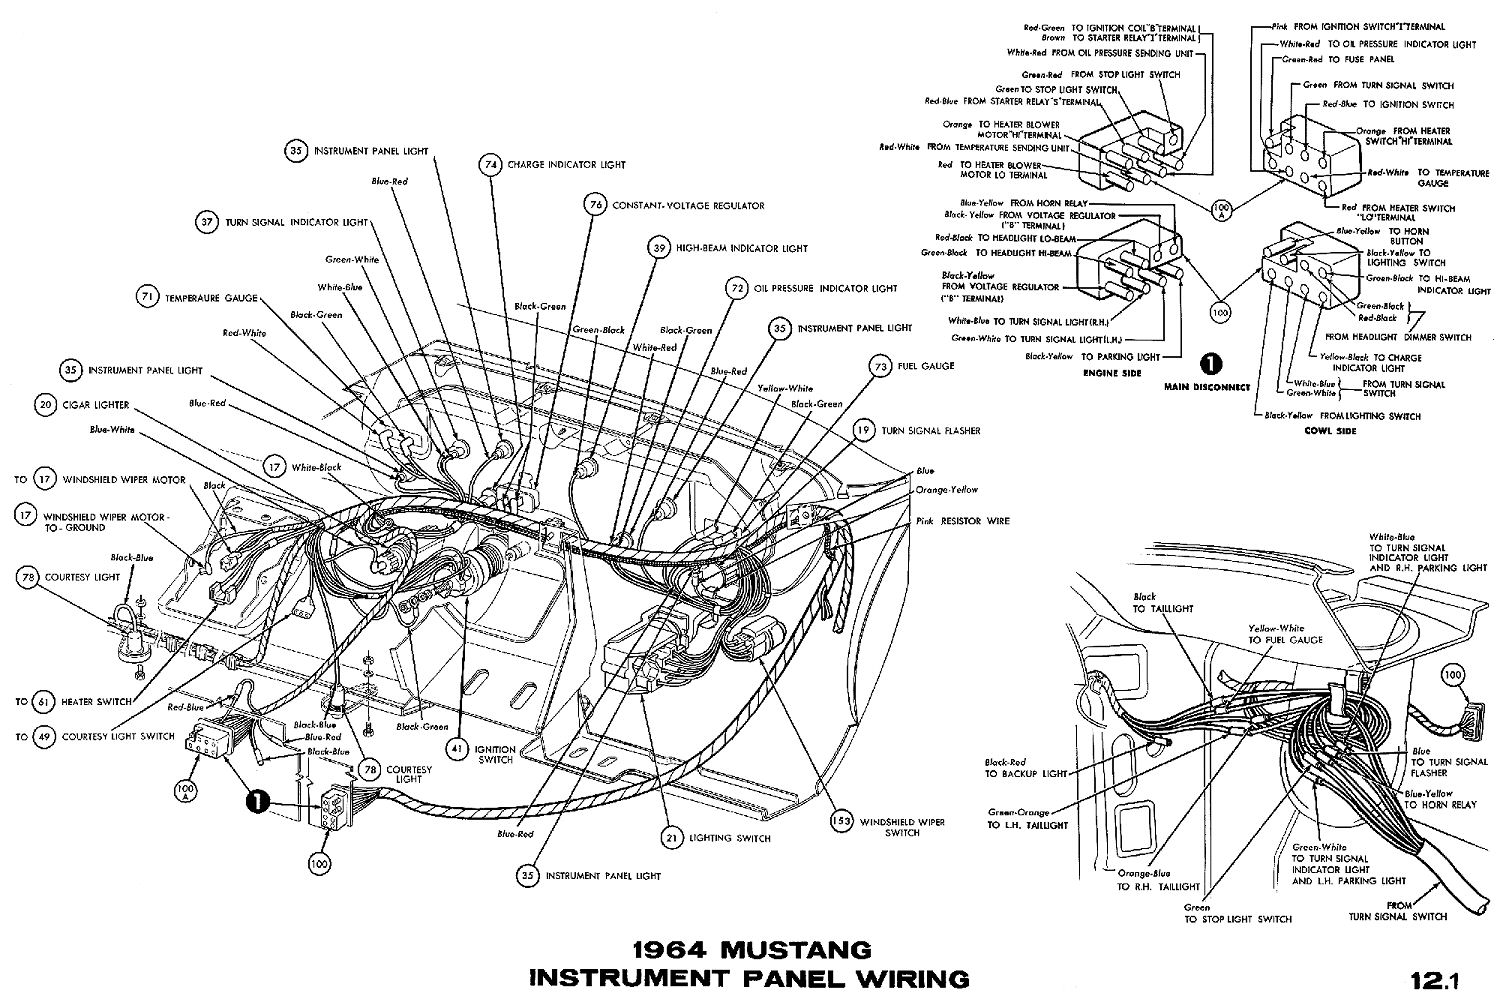 1964 Mustang Wiring Diagrams Average Joe Restoration Ford External Regulator Diagram Instrument Cluster Connections